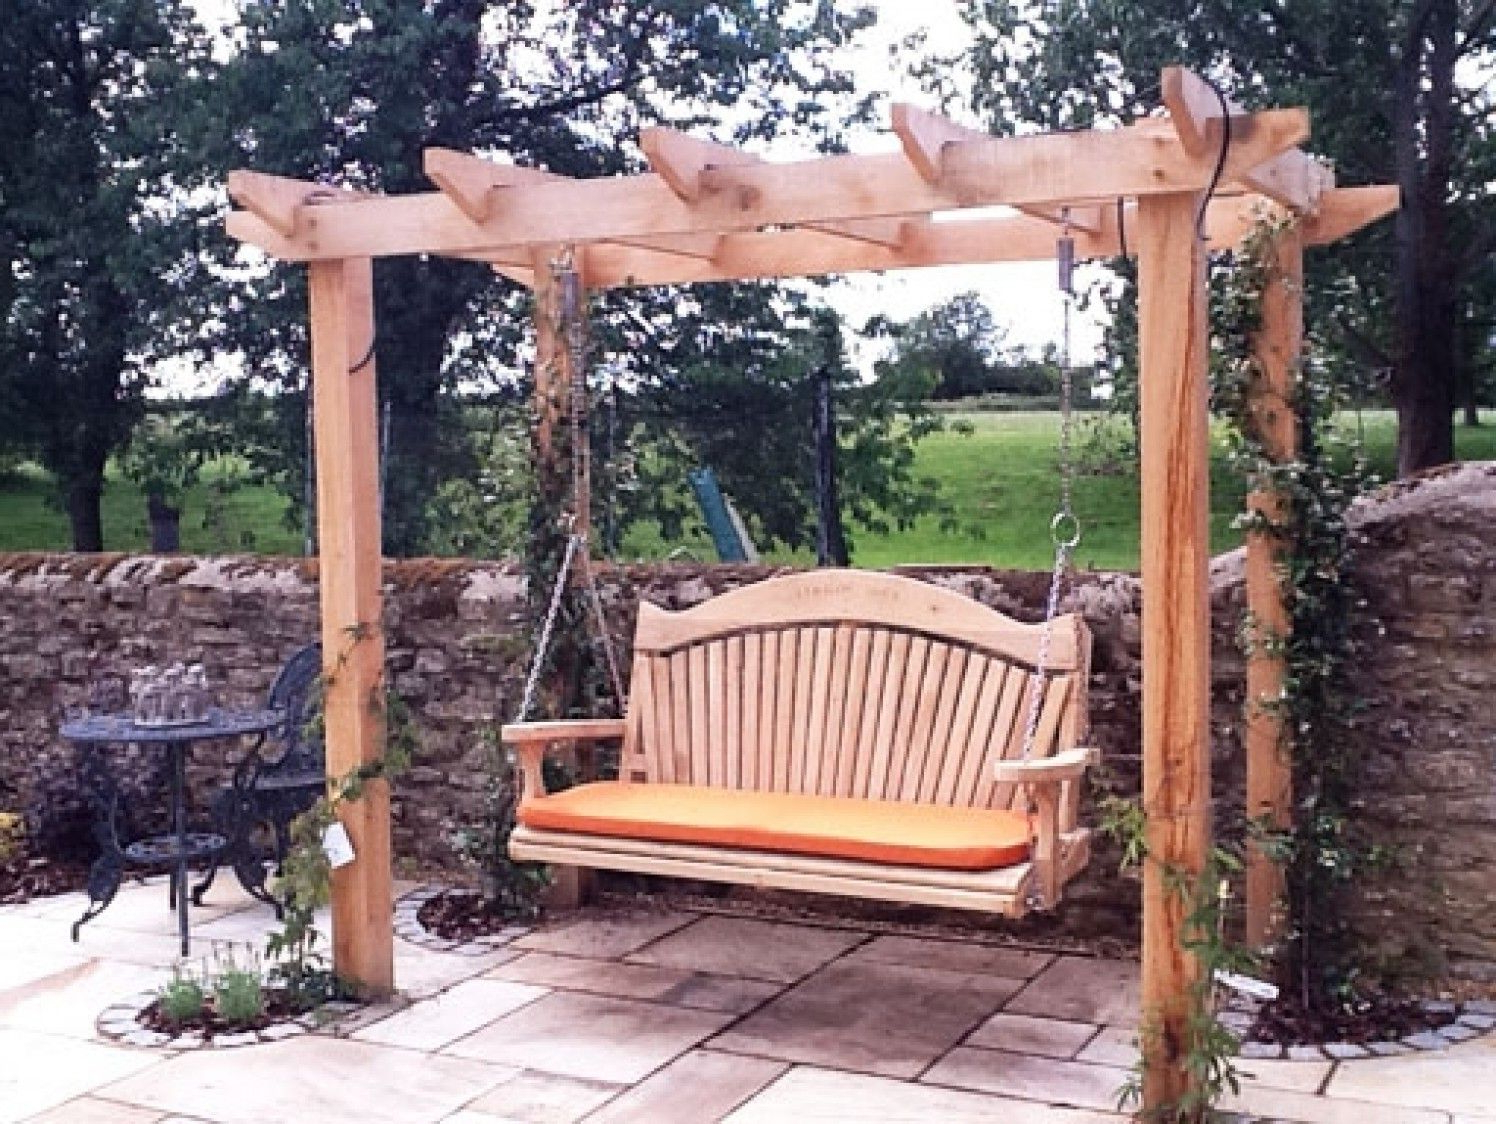 3 Seat Pergola Swings With Regard To Well Liked Quality Wooden Swing Seat And Pergola (View 12 of 30)